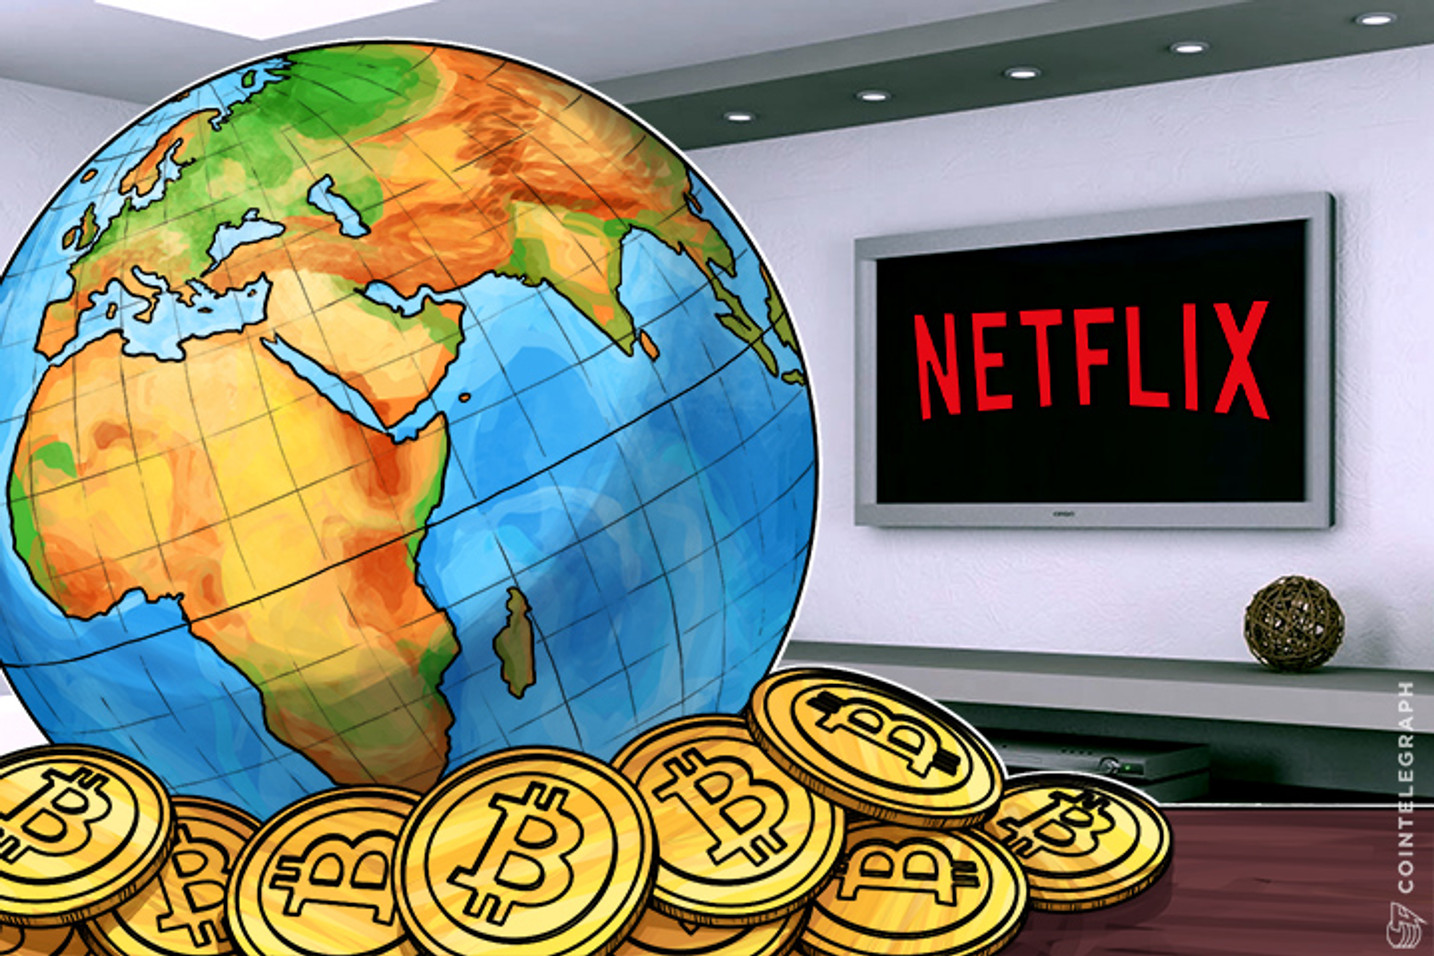 Netflix Executive Wants Bitcoin as Global Currency, Considers It Cost-Effective